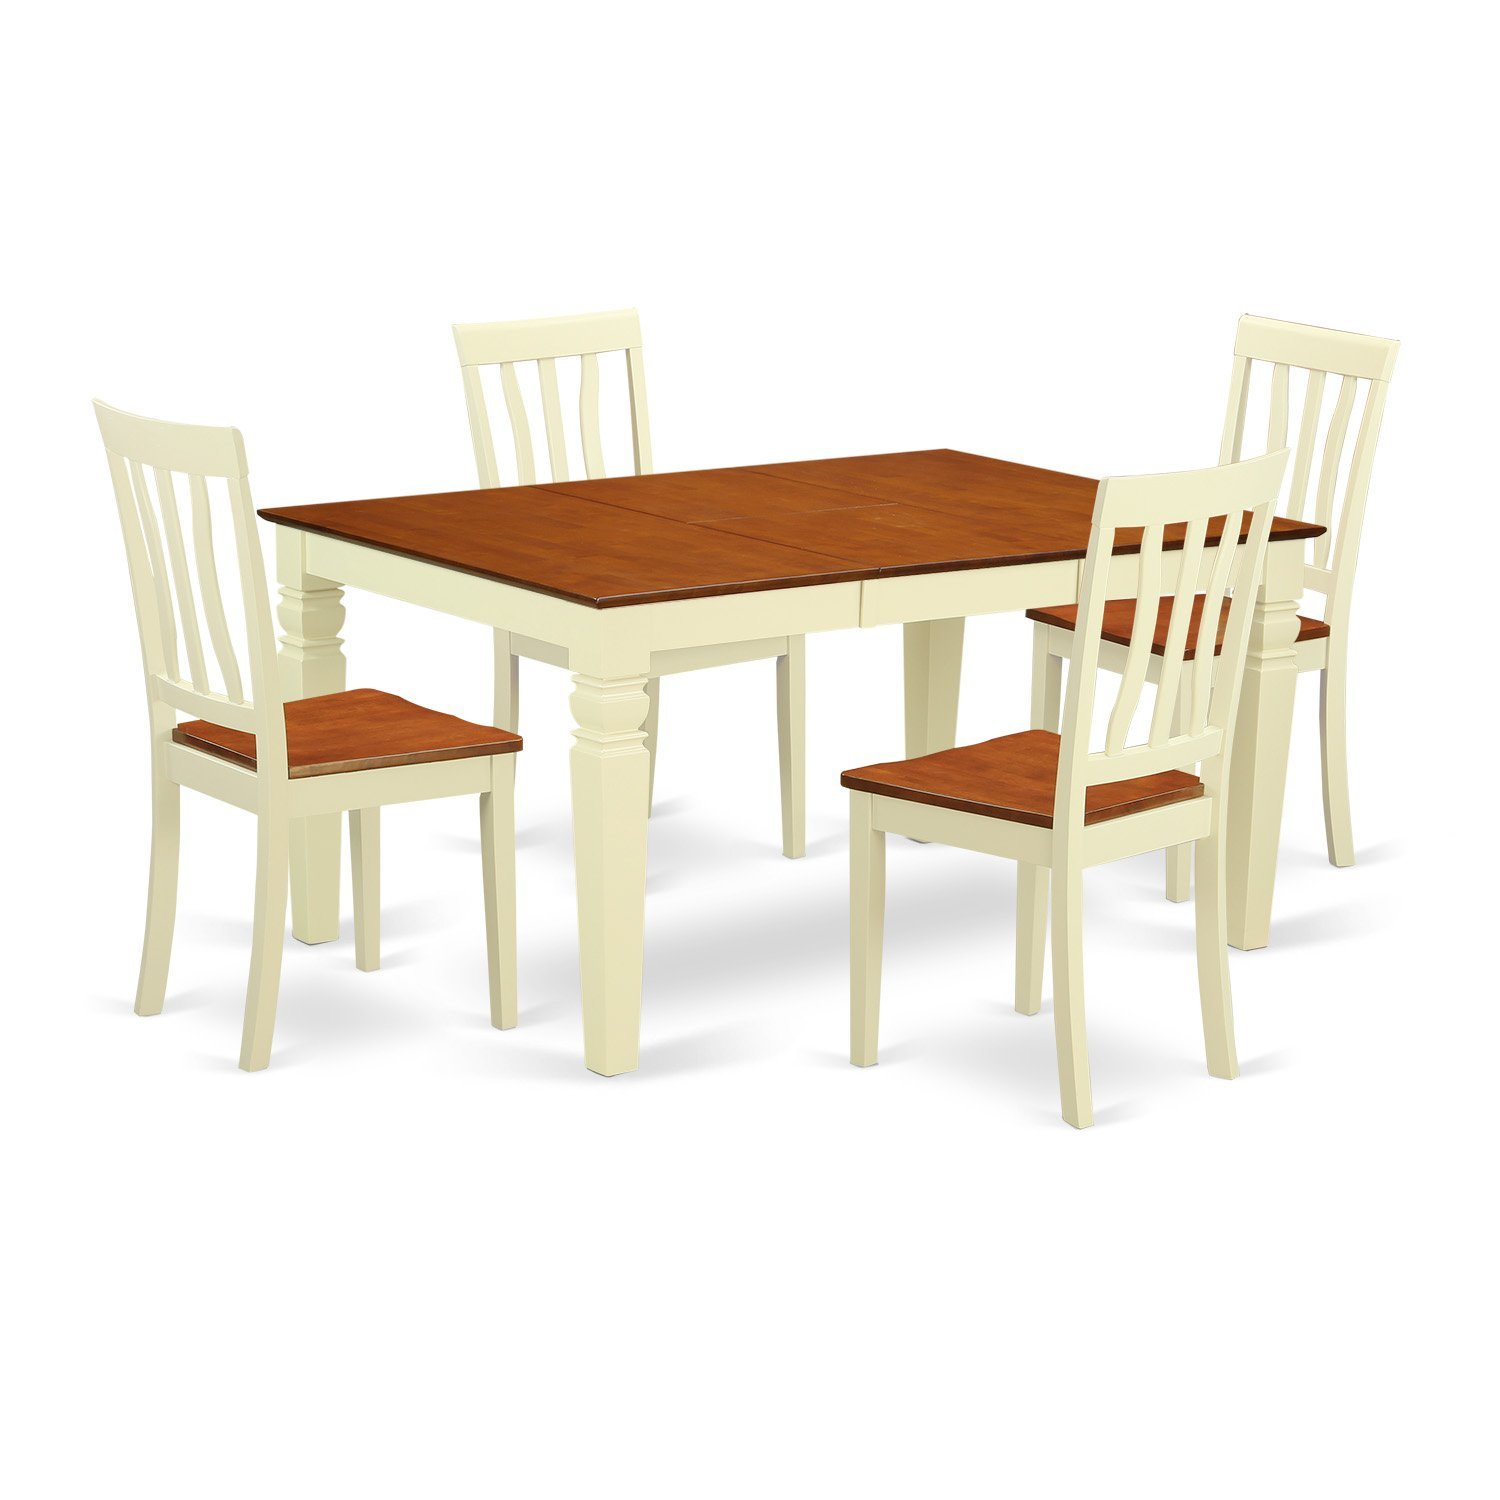 East West Furniture Weston WEAN5-BMK-W 5 Pc Kitchen Set Table and 4 Wood Dining Chairs, Buttermilk and Cherry